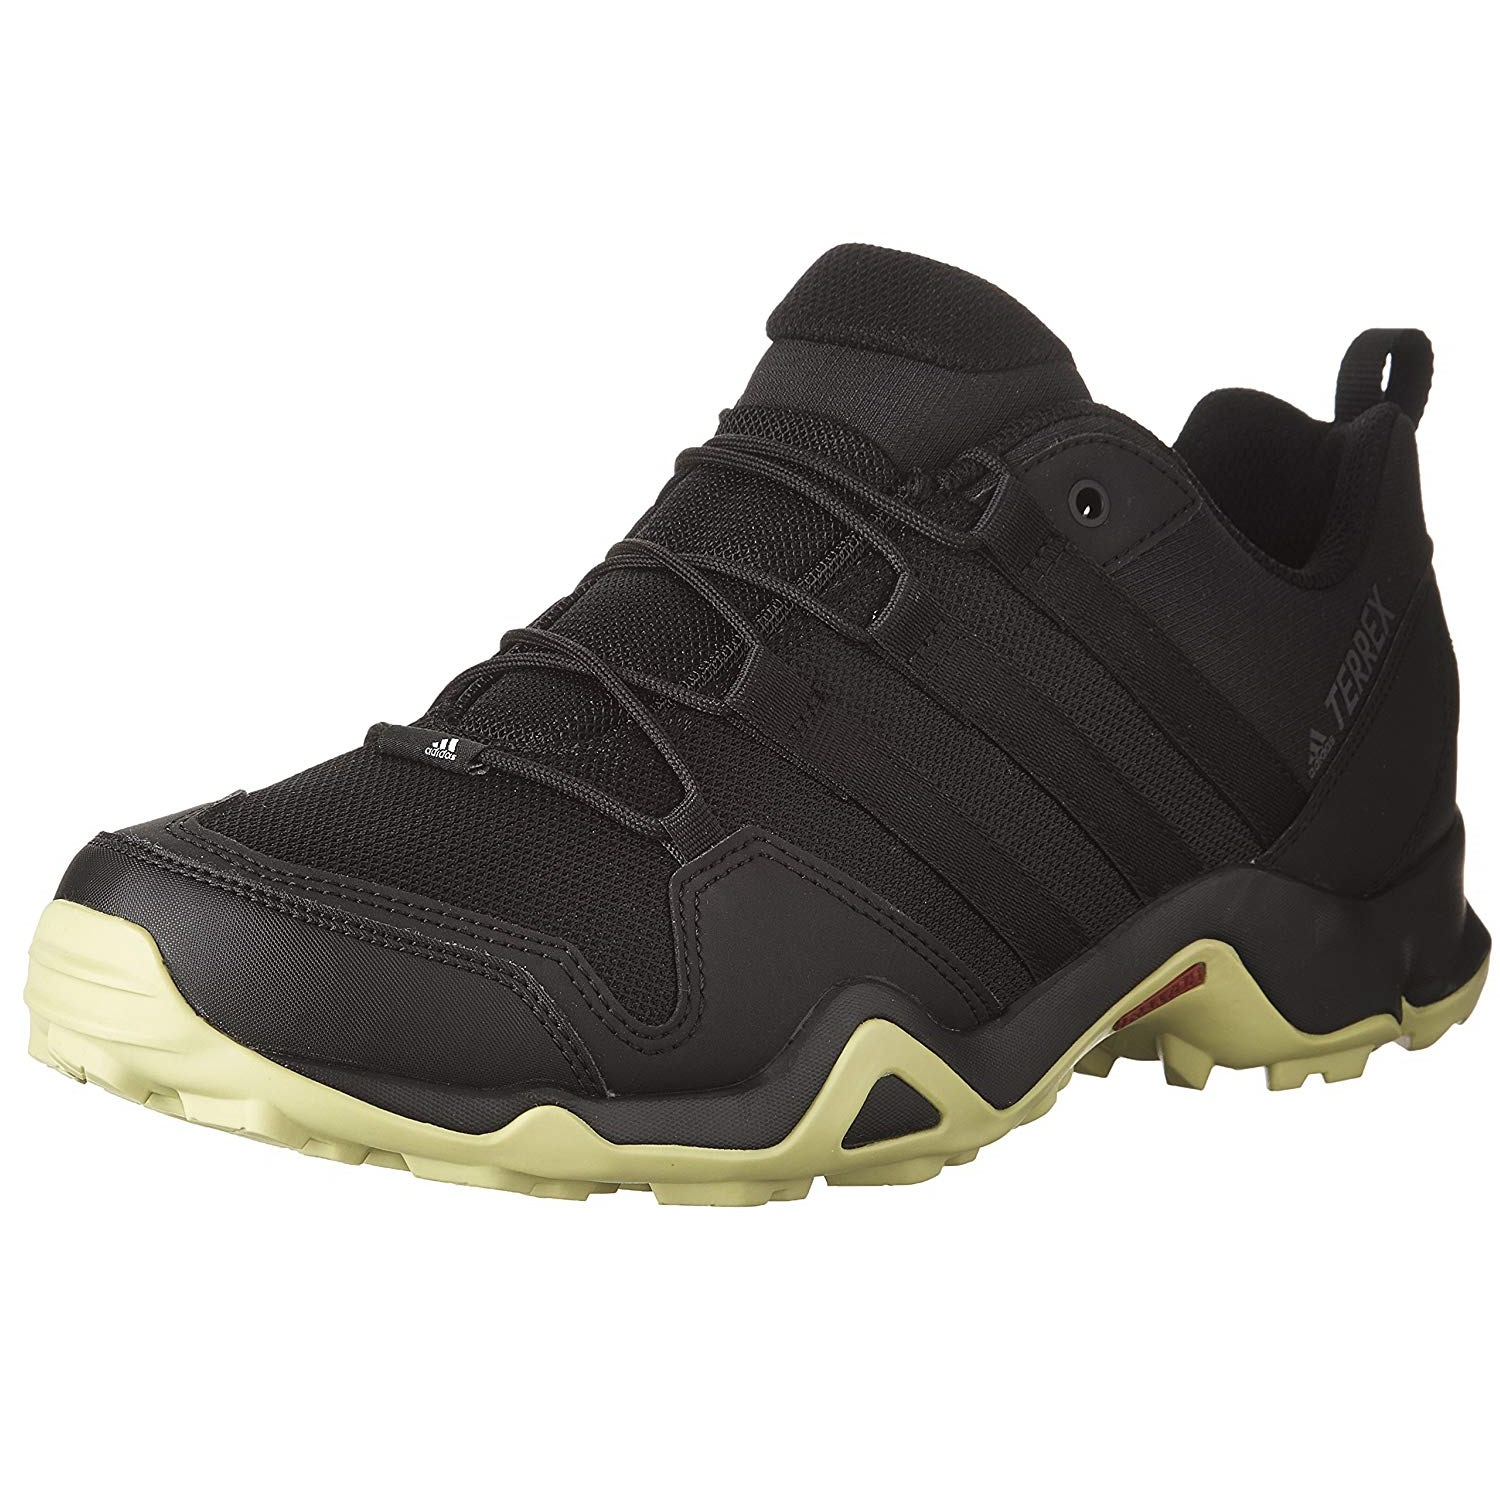 df0621698d15c Adidas Terrex AX2R  To Buy or Not in 2019